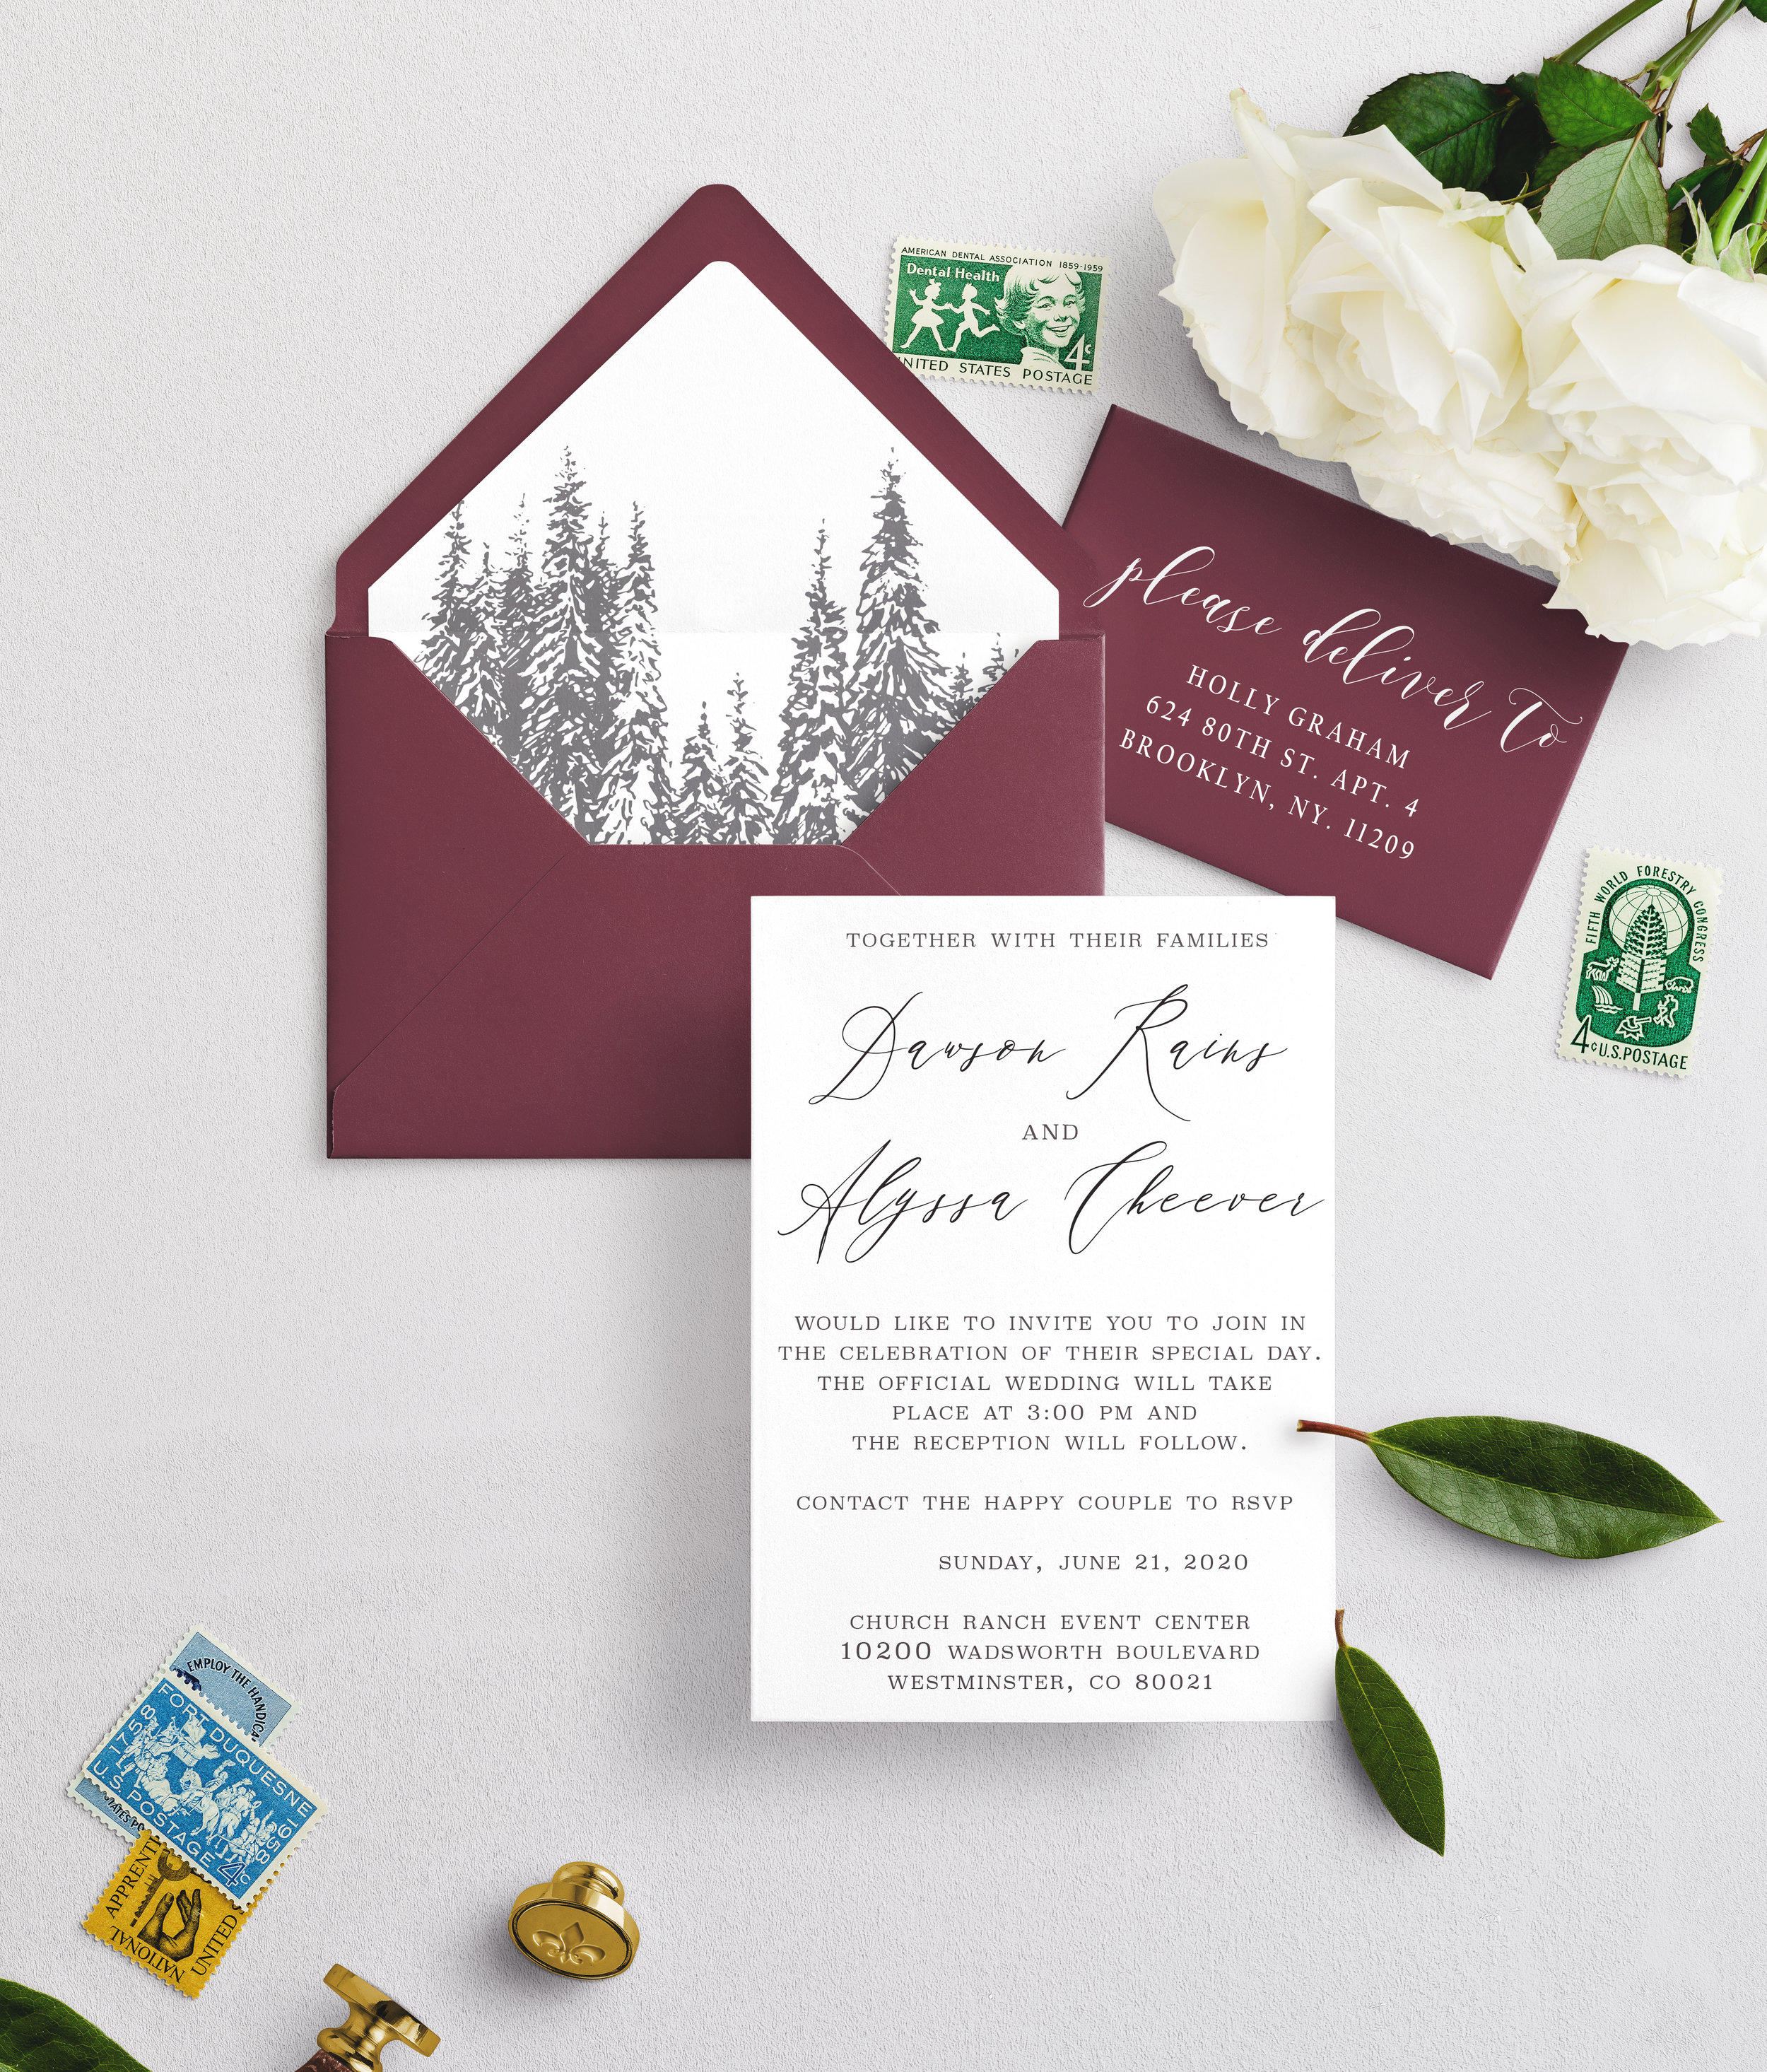 We included your requested burgundy (claret) wedding color and our standard aspen tree liner. If you choose this direction, it will be more of a clean/elegant feel.